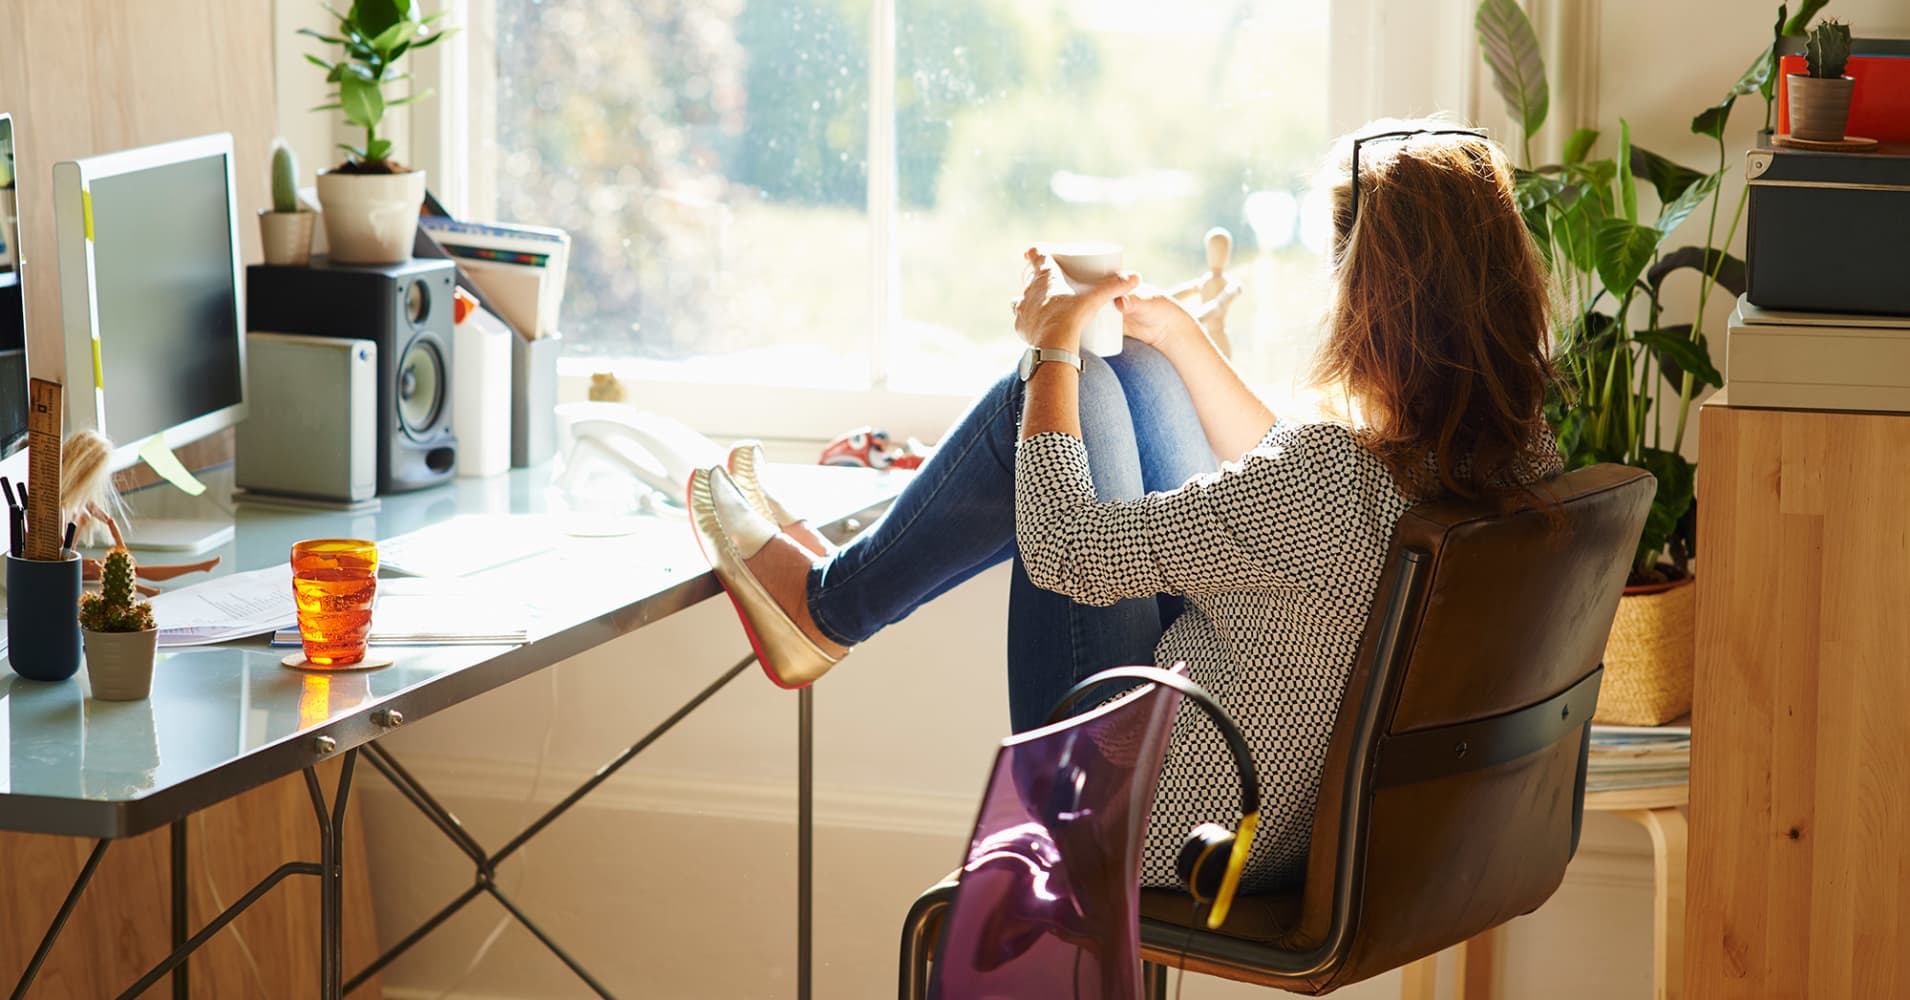 The new flex time: Why working remotely is becoming the next hot job trend